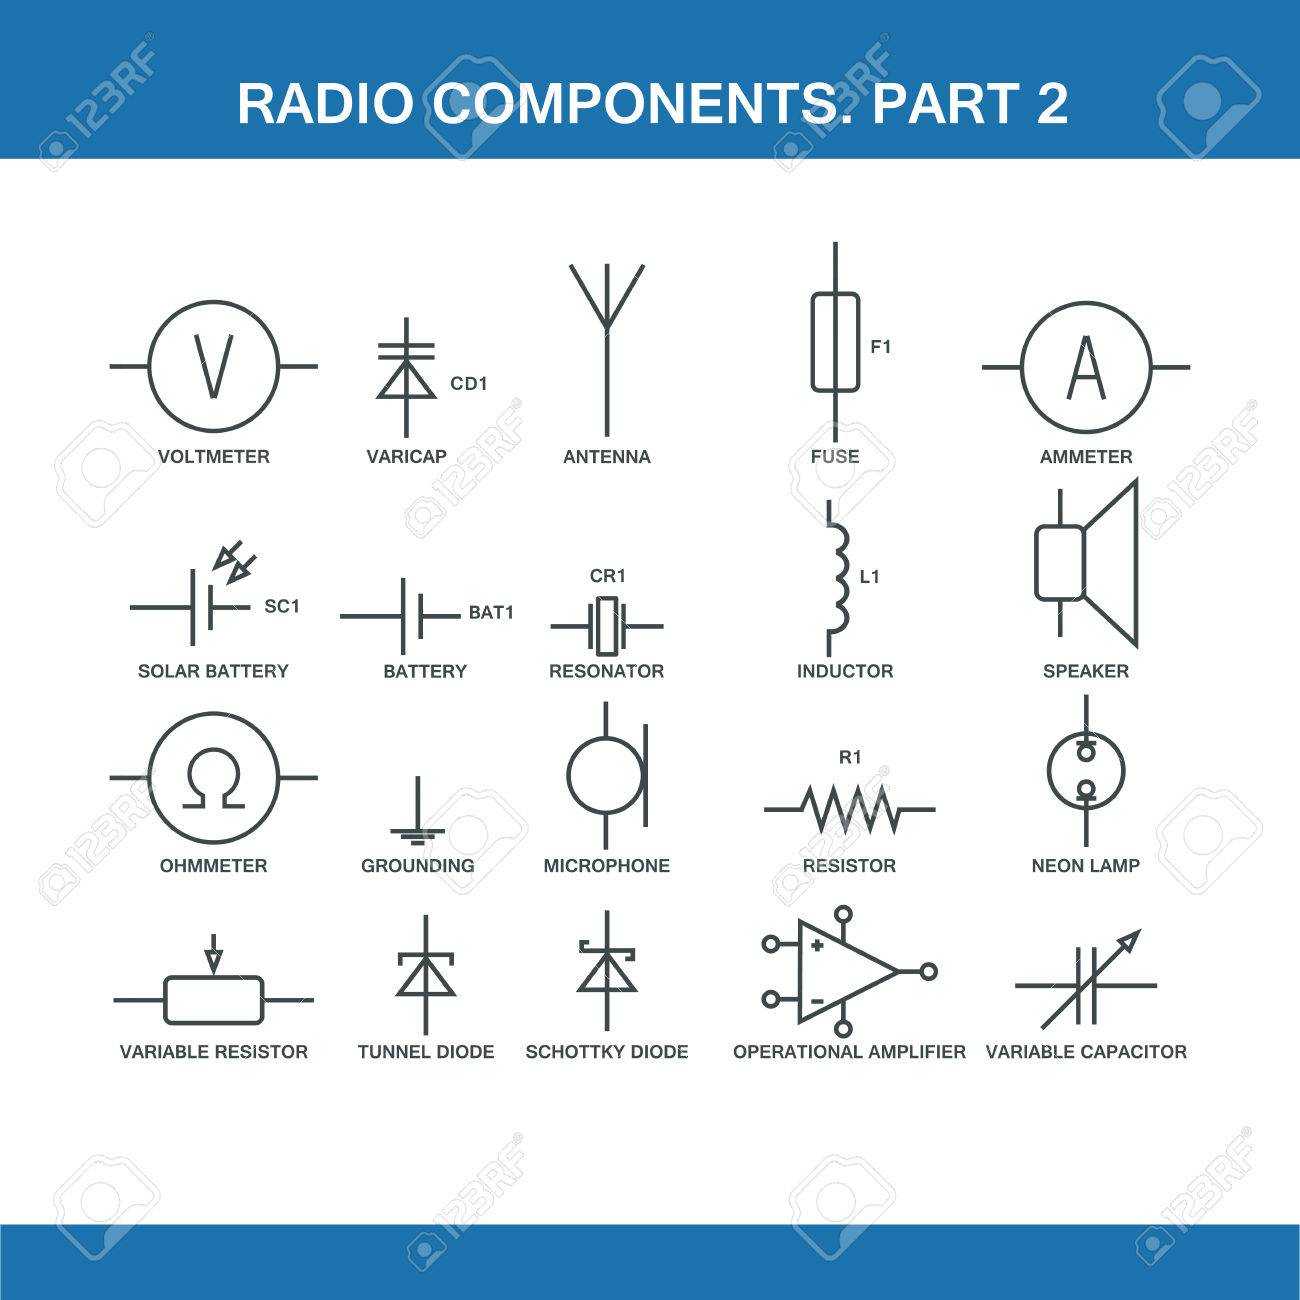 Phenomenal Designation Of Components In The Wiring Diagram In Vector Format Wiring Digital Resources Remcakbiperorg